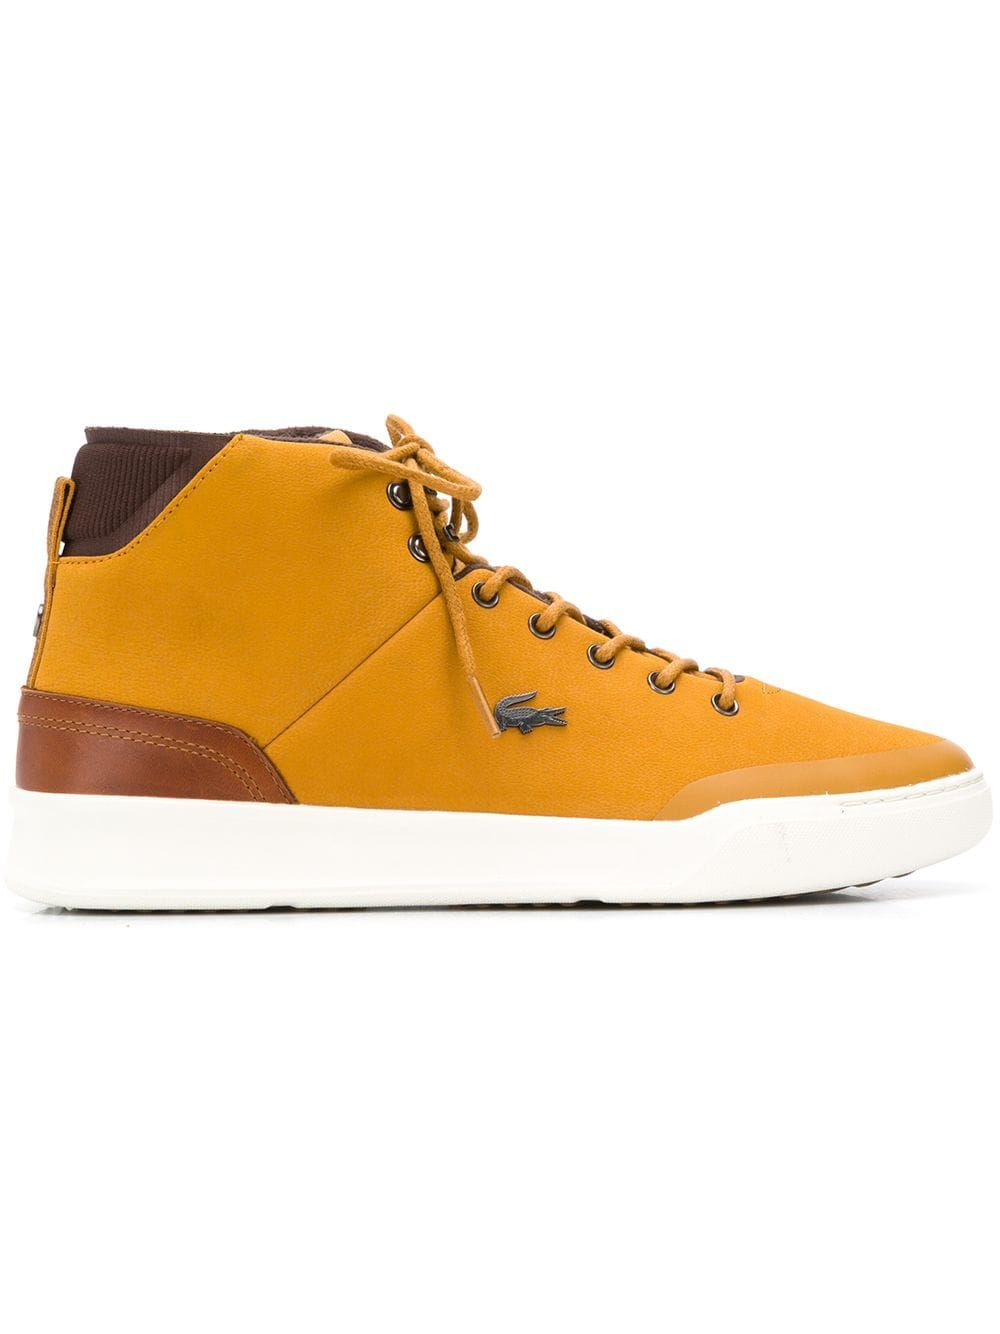 6edfc13b3a6ee LACOSTE LACOSTE SHEARLING BOOTS - YELLOW.  lacoste  shoes Lacoste Shoes Mens